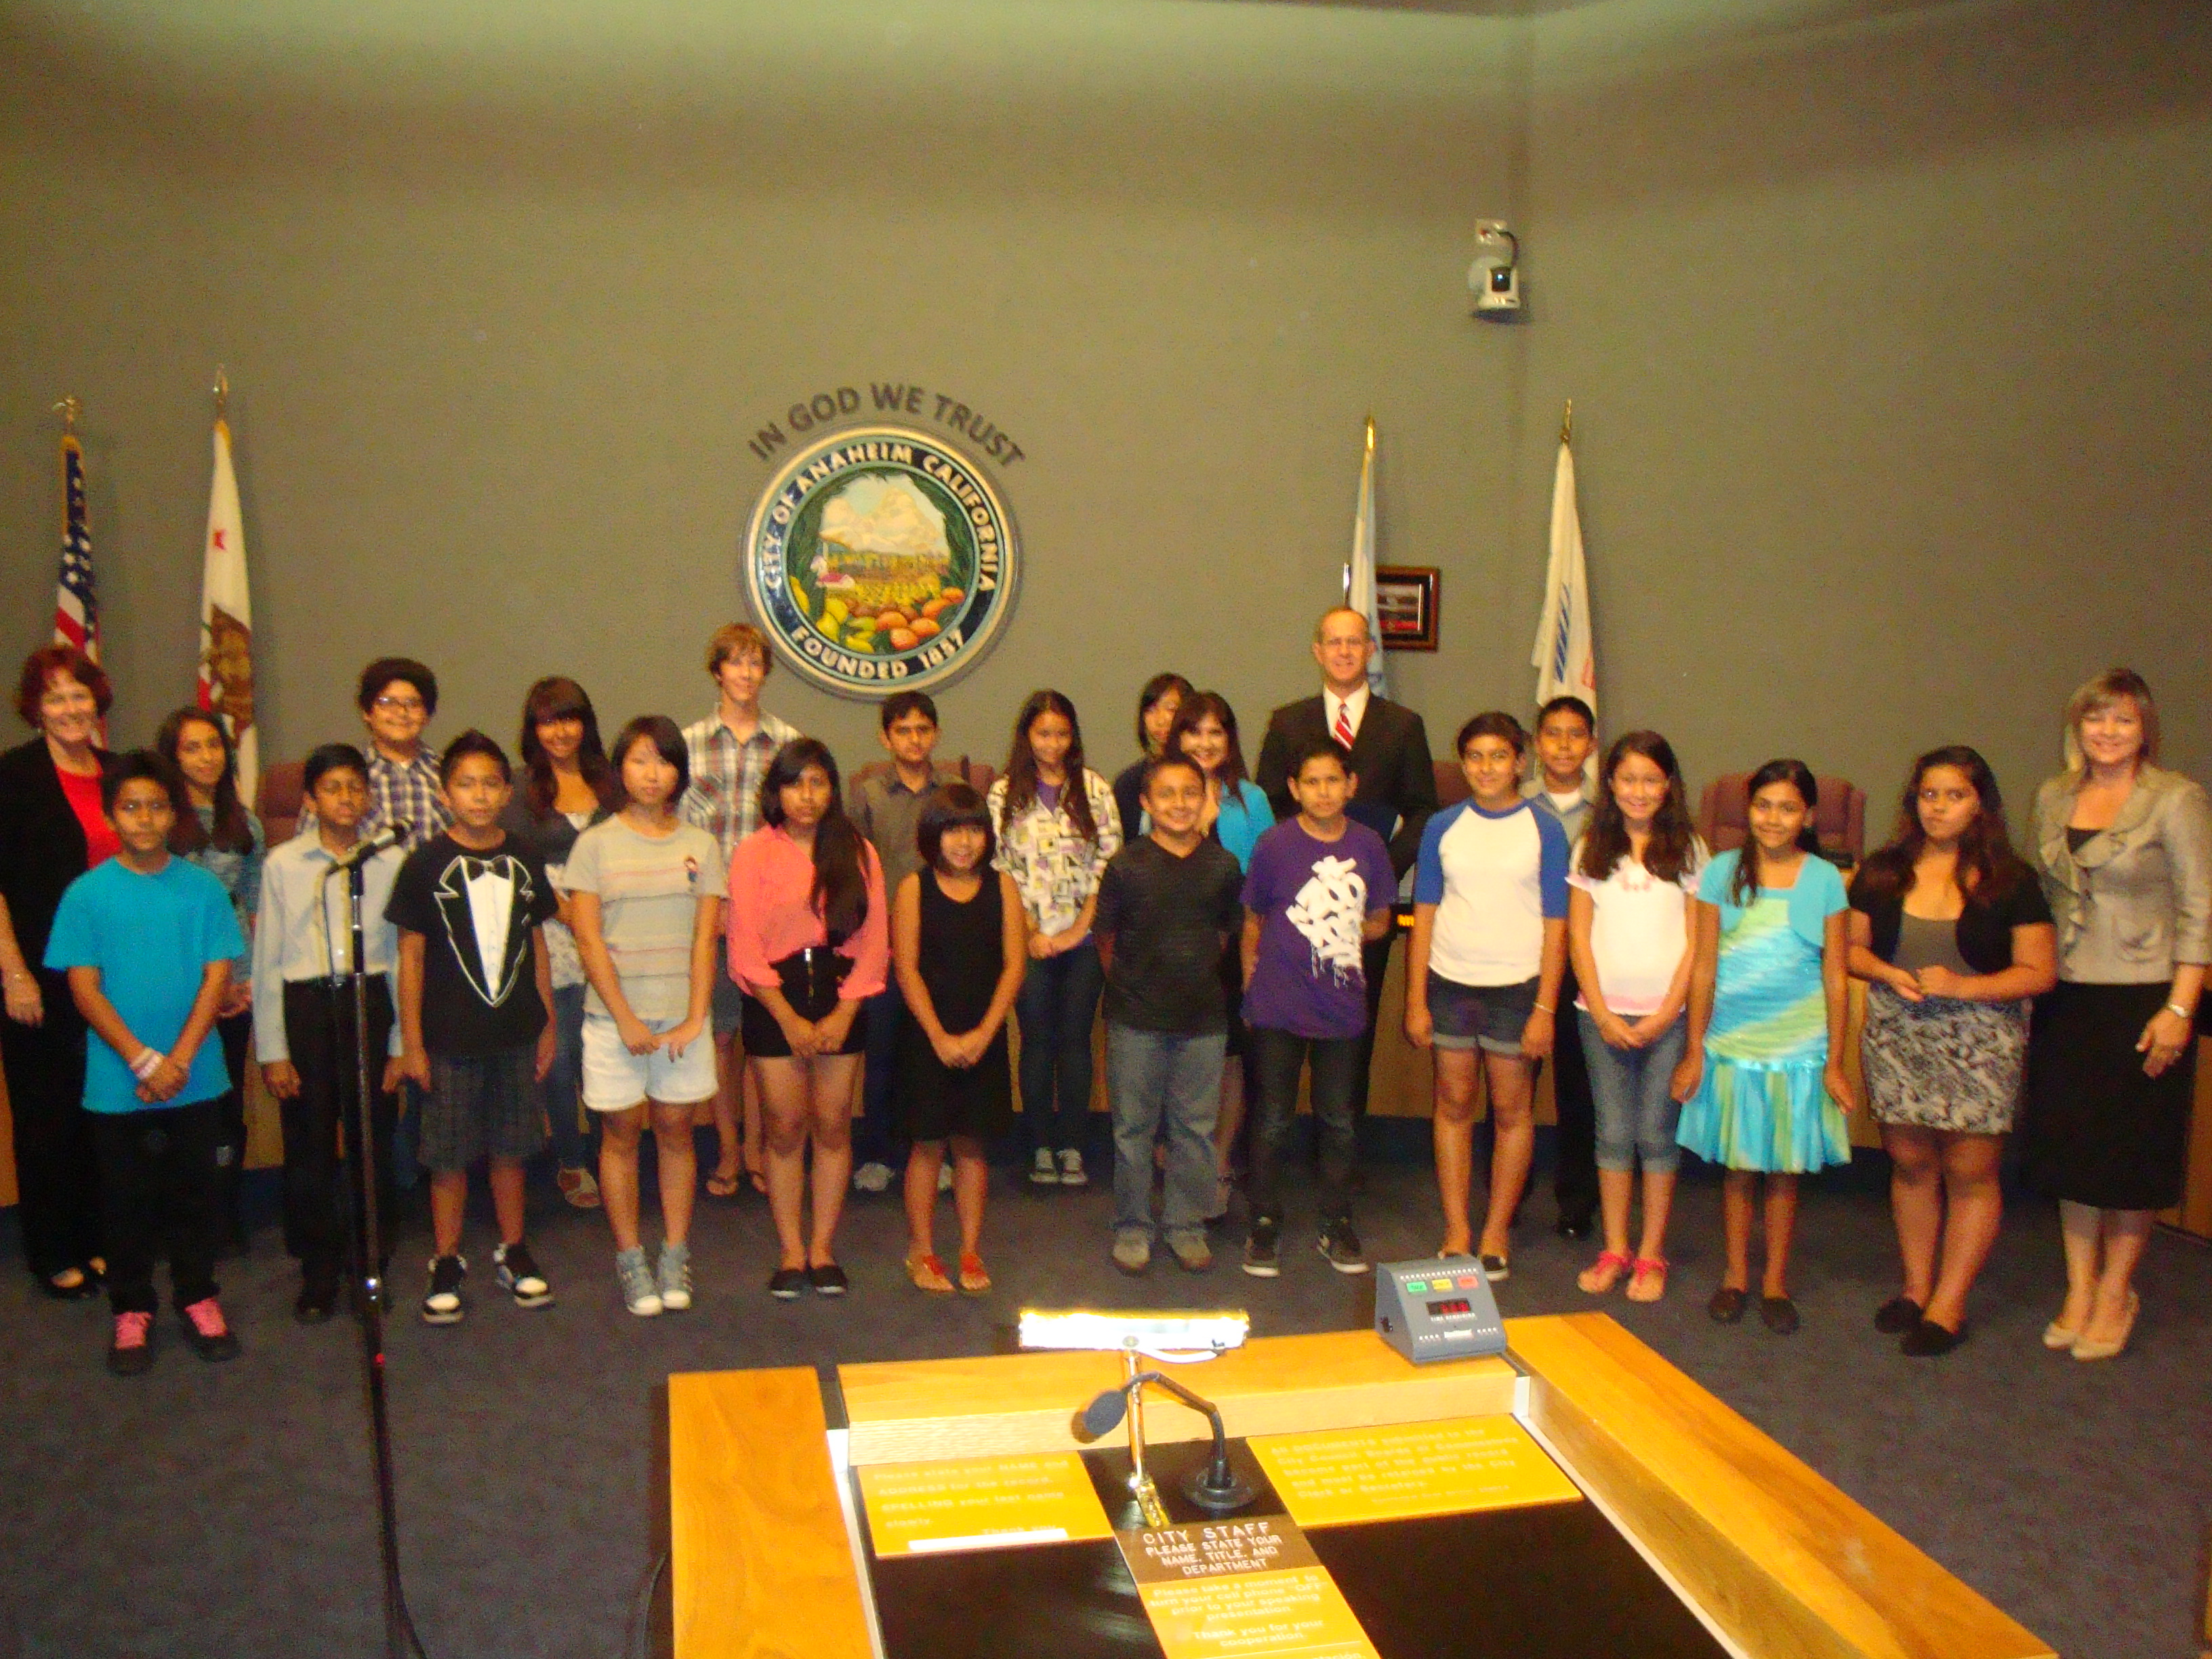 Large group photo with children at a city council meeting